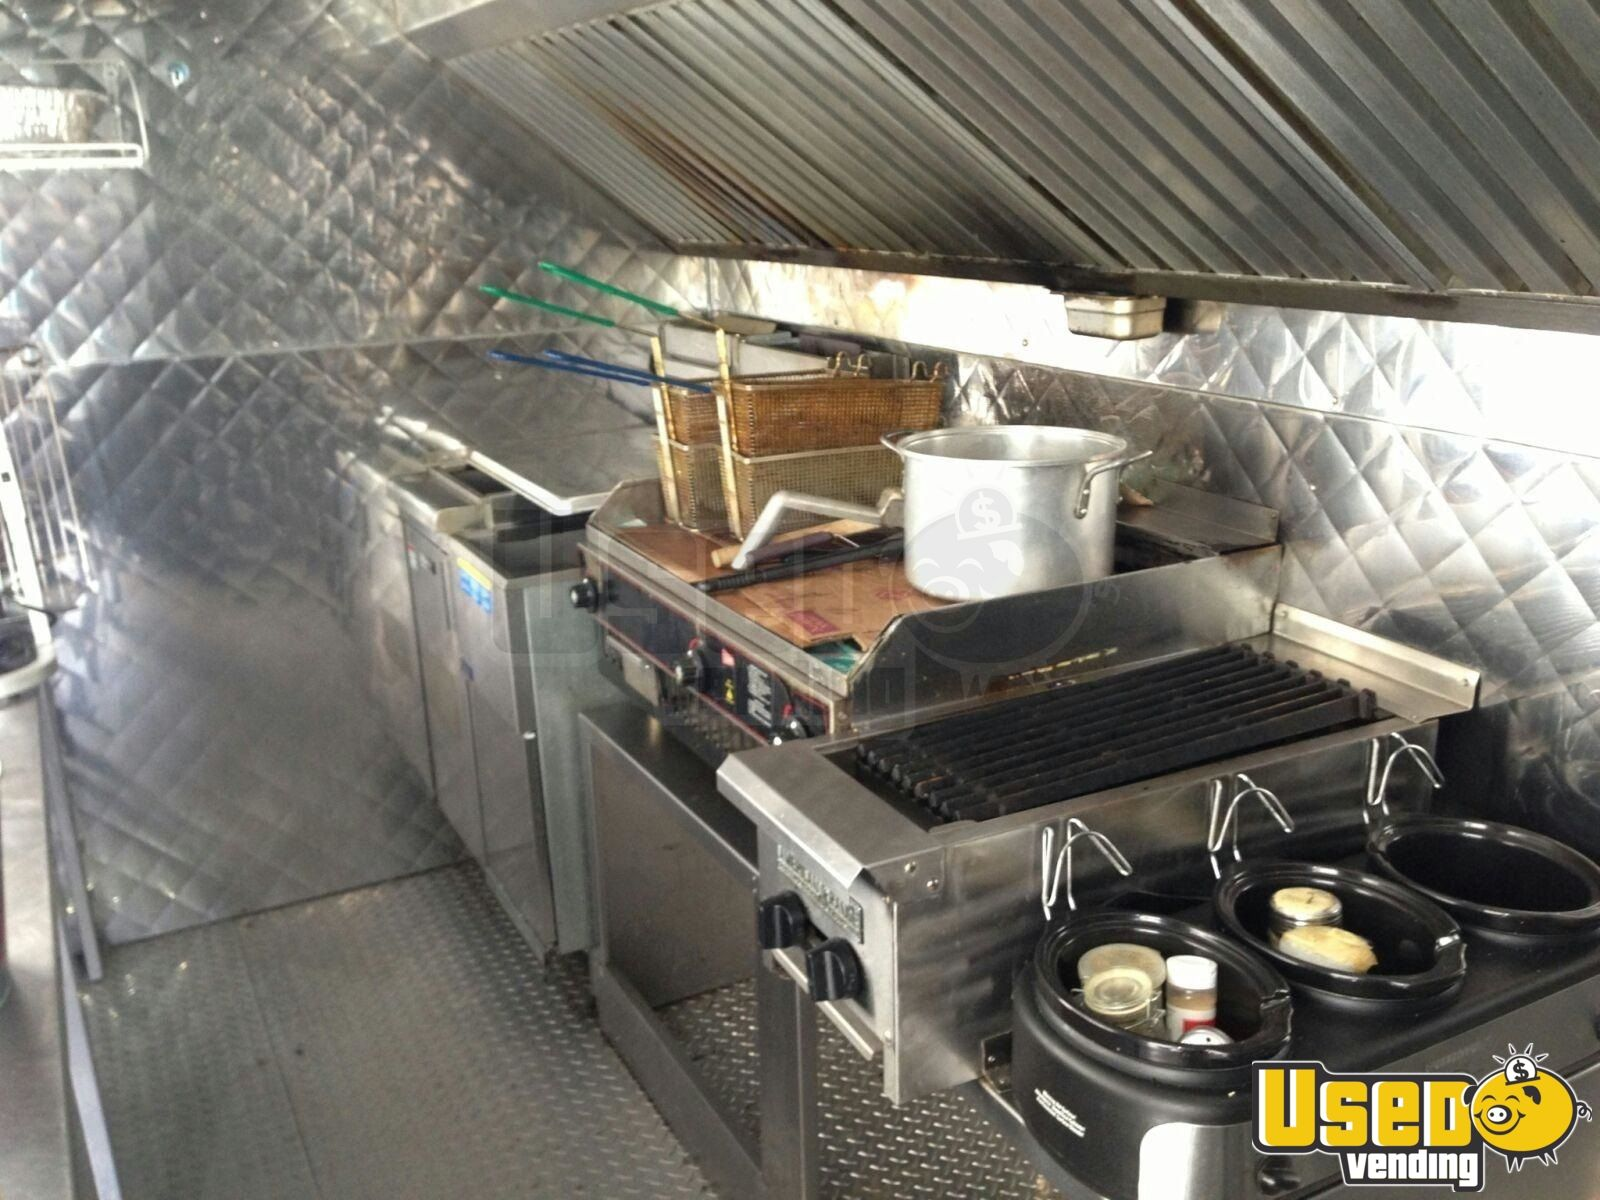 2013 2013 Kitchen Food Trailer Generator Georgia for Sale - 7